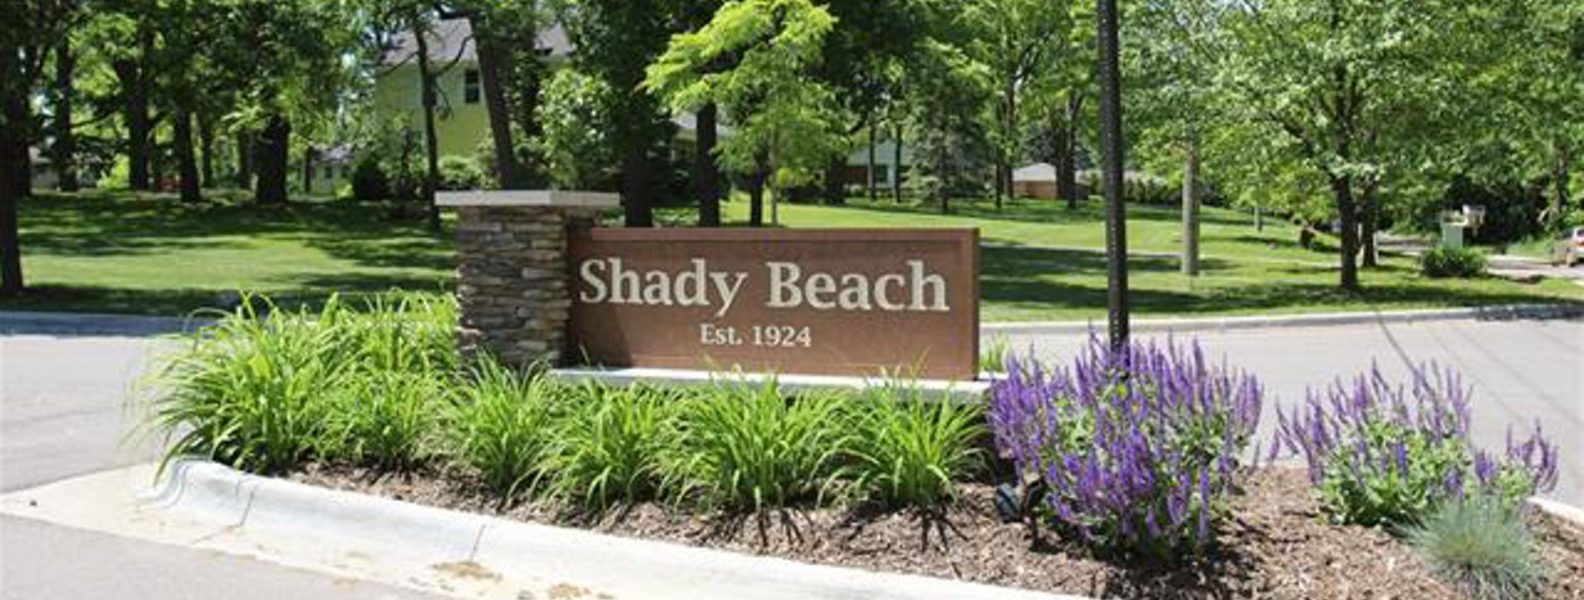 Shady Beach entrance